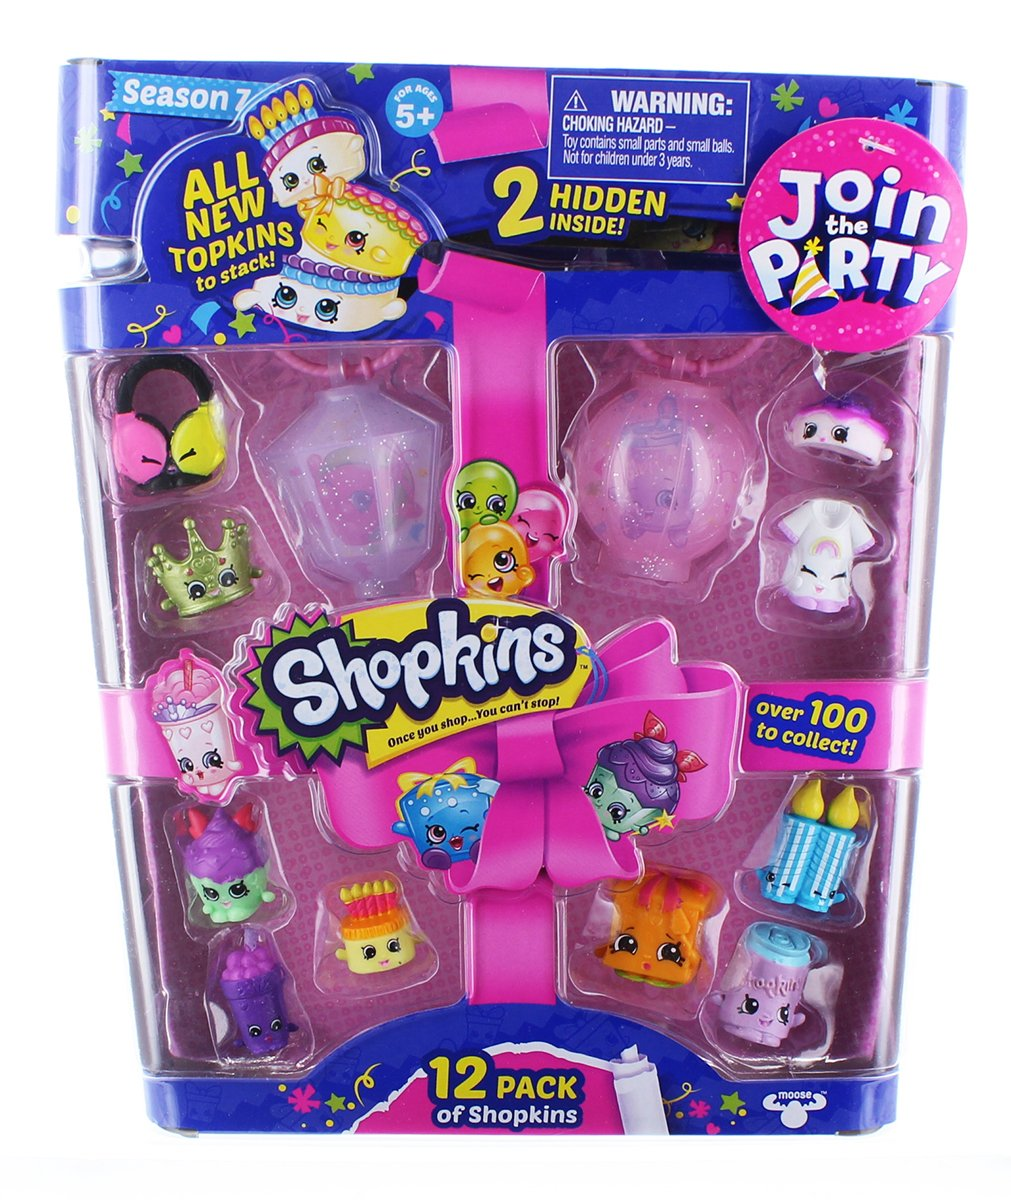 Shopkins Join the Party 12 Pack - Season 7